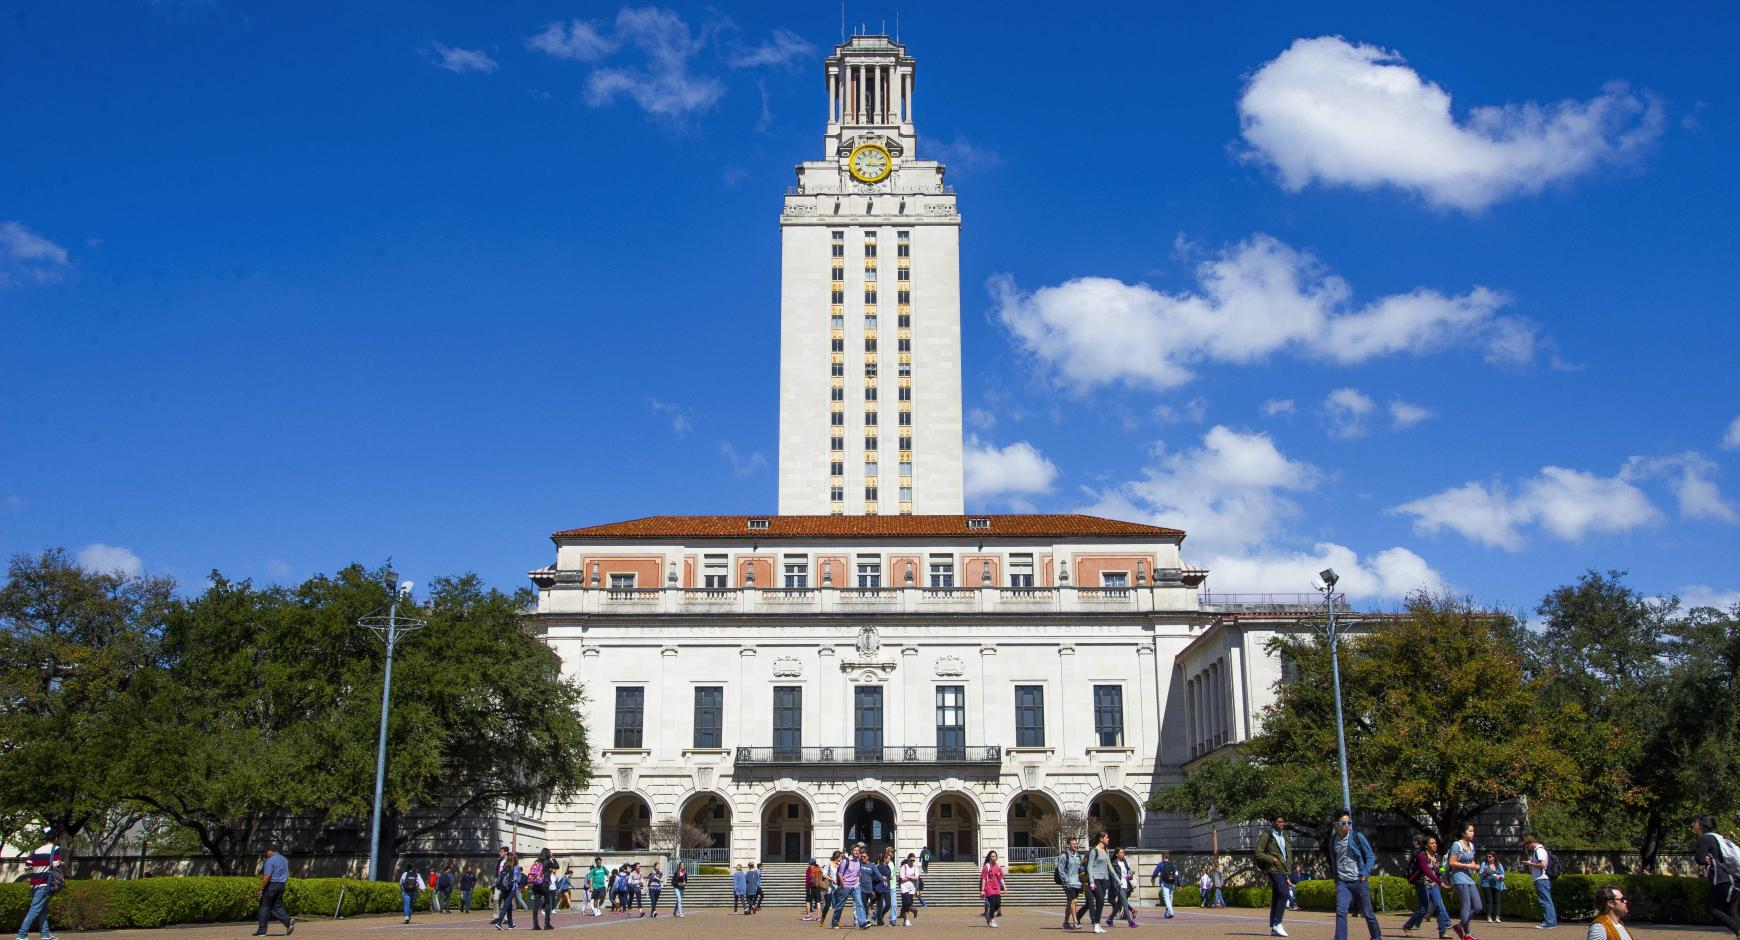 University of Texas at Austin